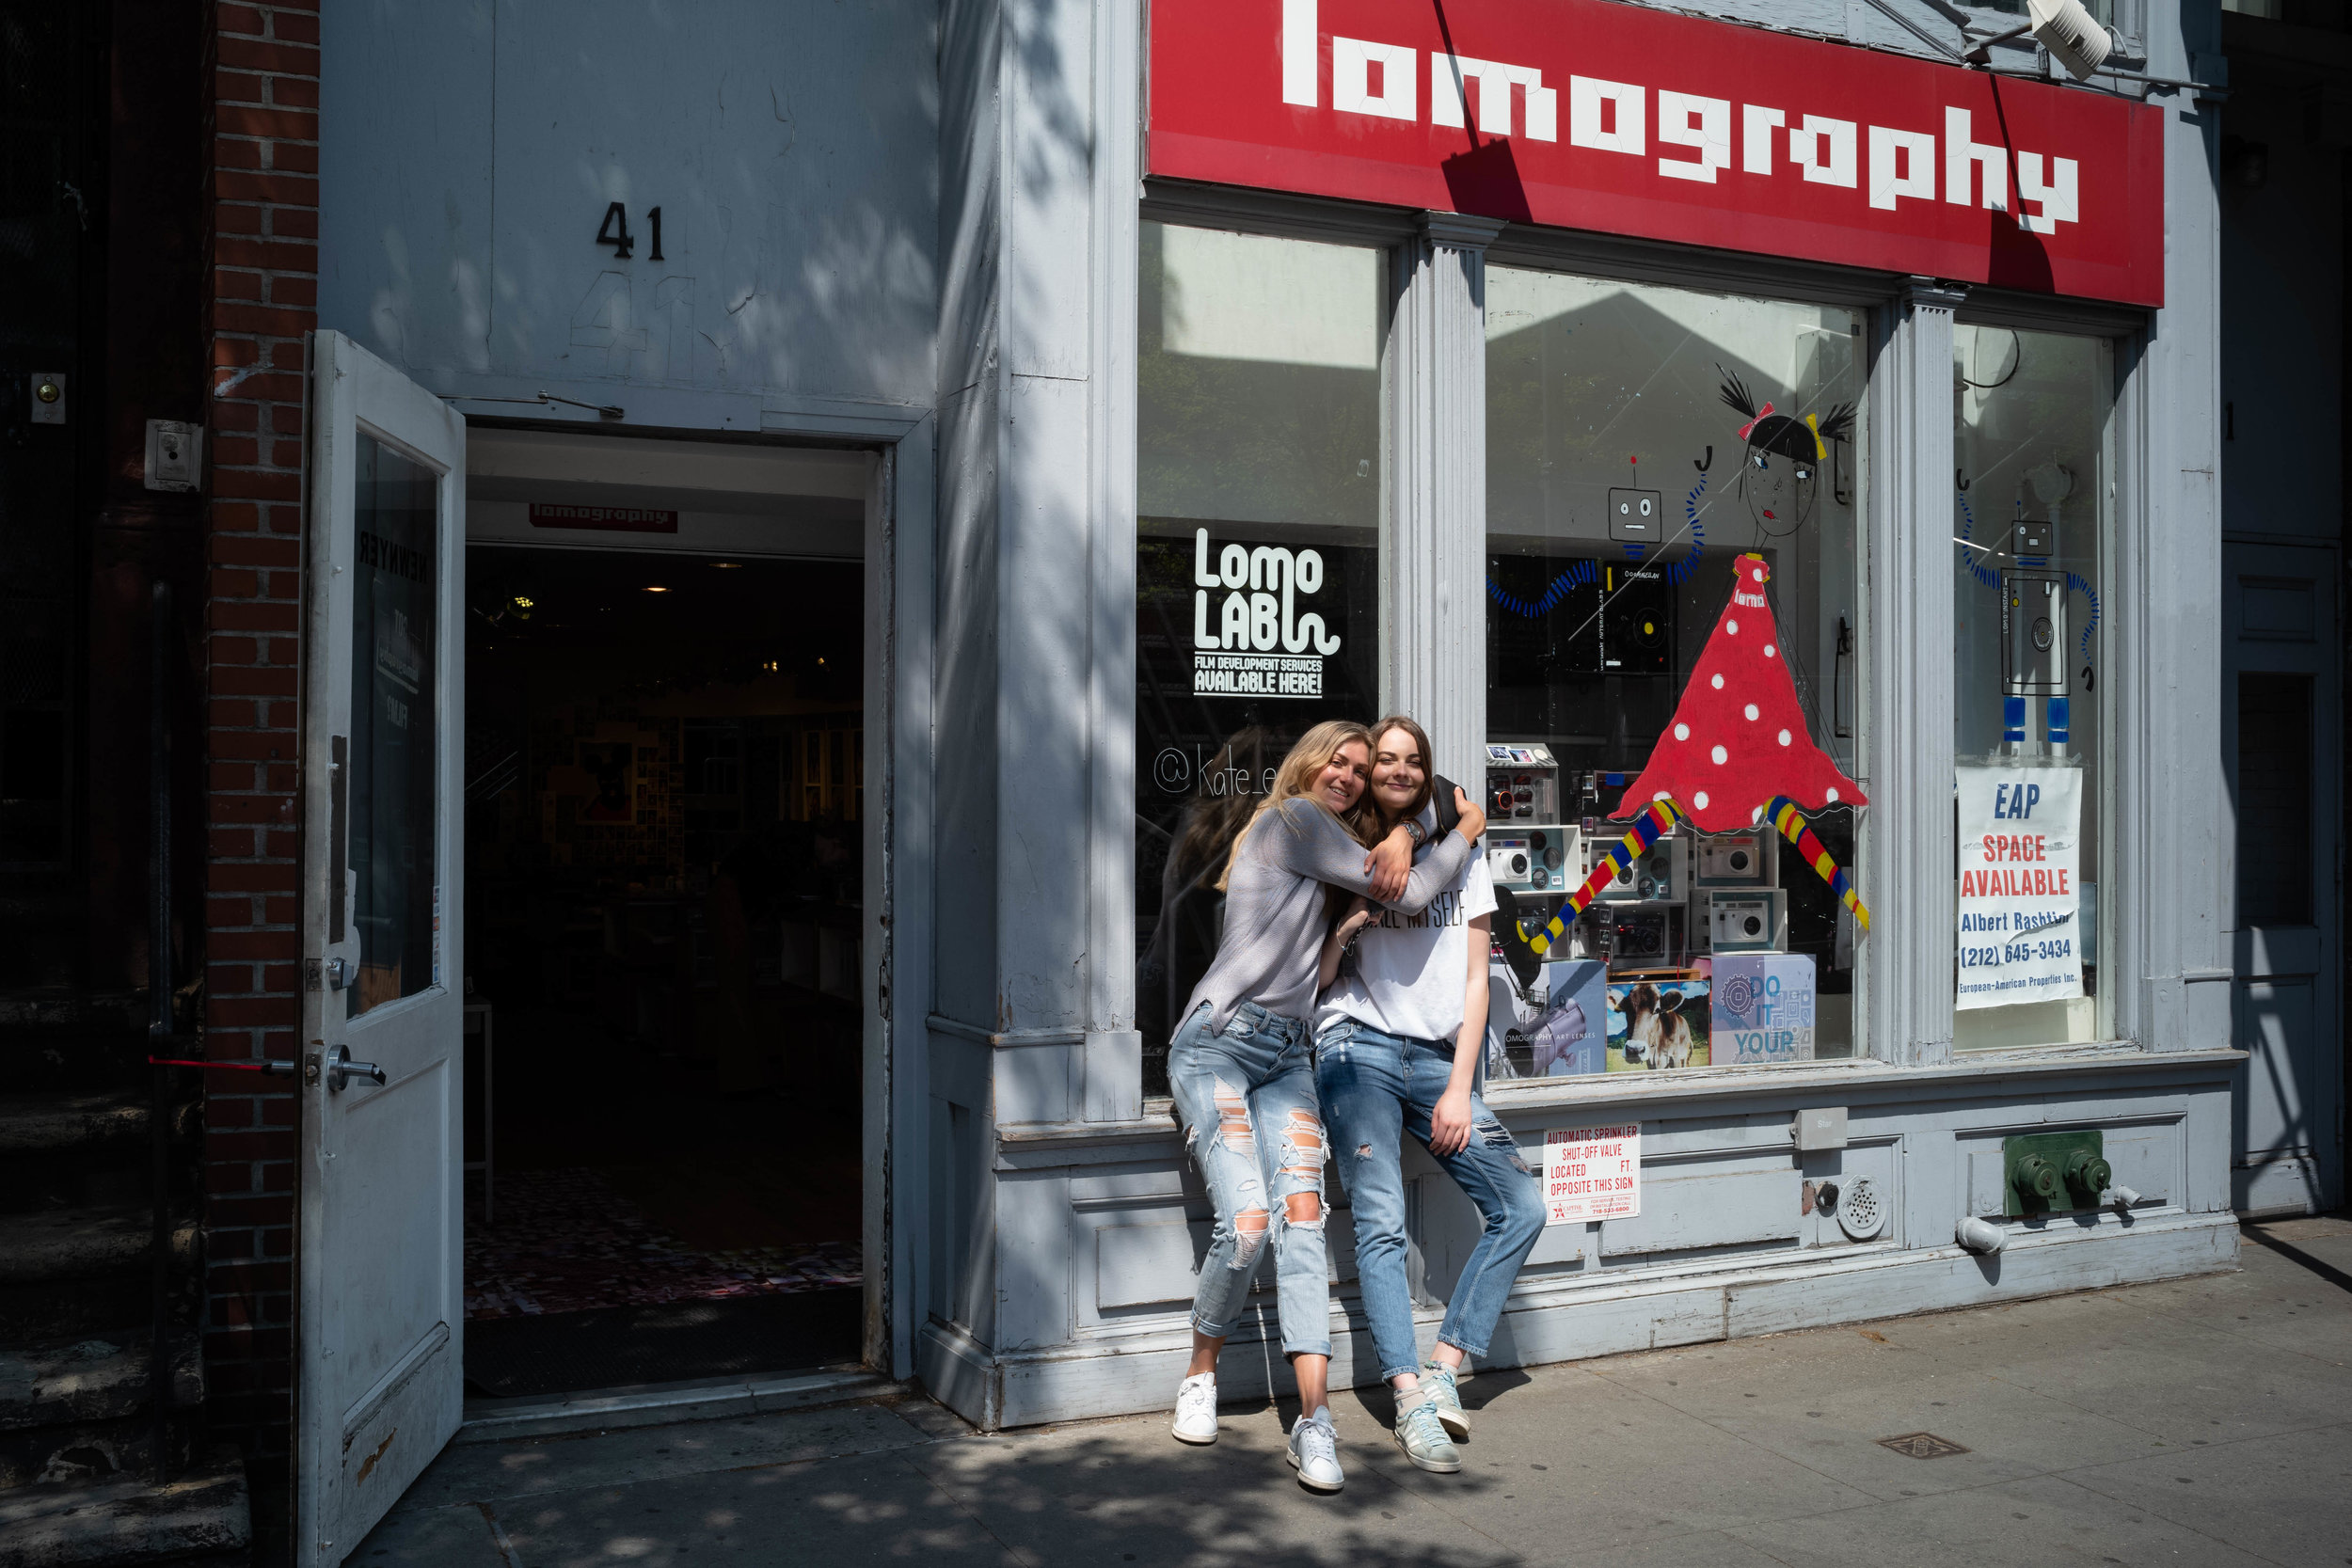 In front of the Lomography Store.